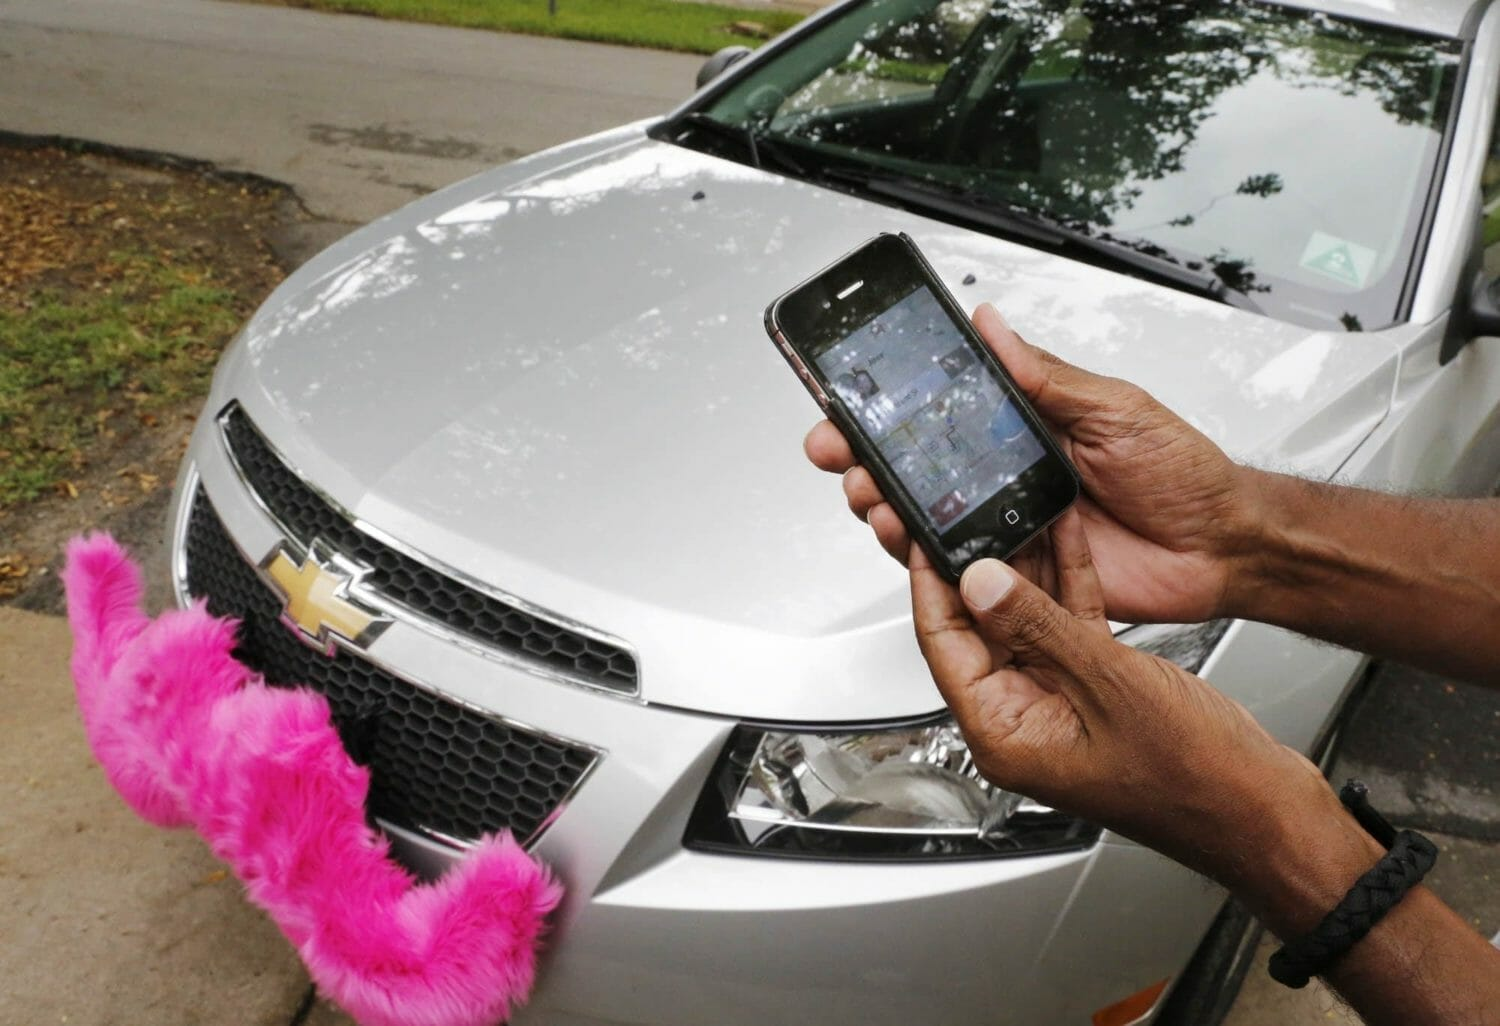 Broward Commissioners ask for regulations to govern transportation network companies such as Uber and Lyft